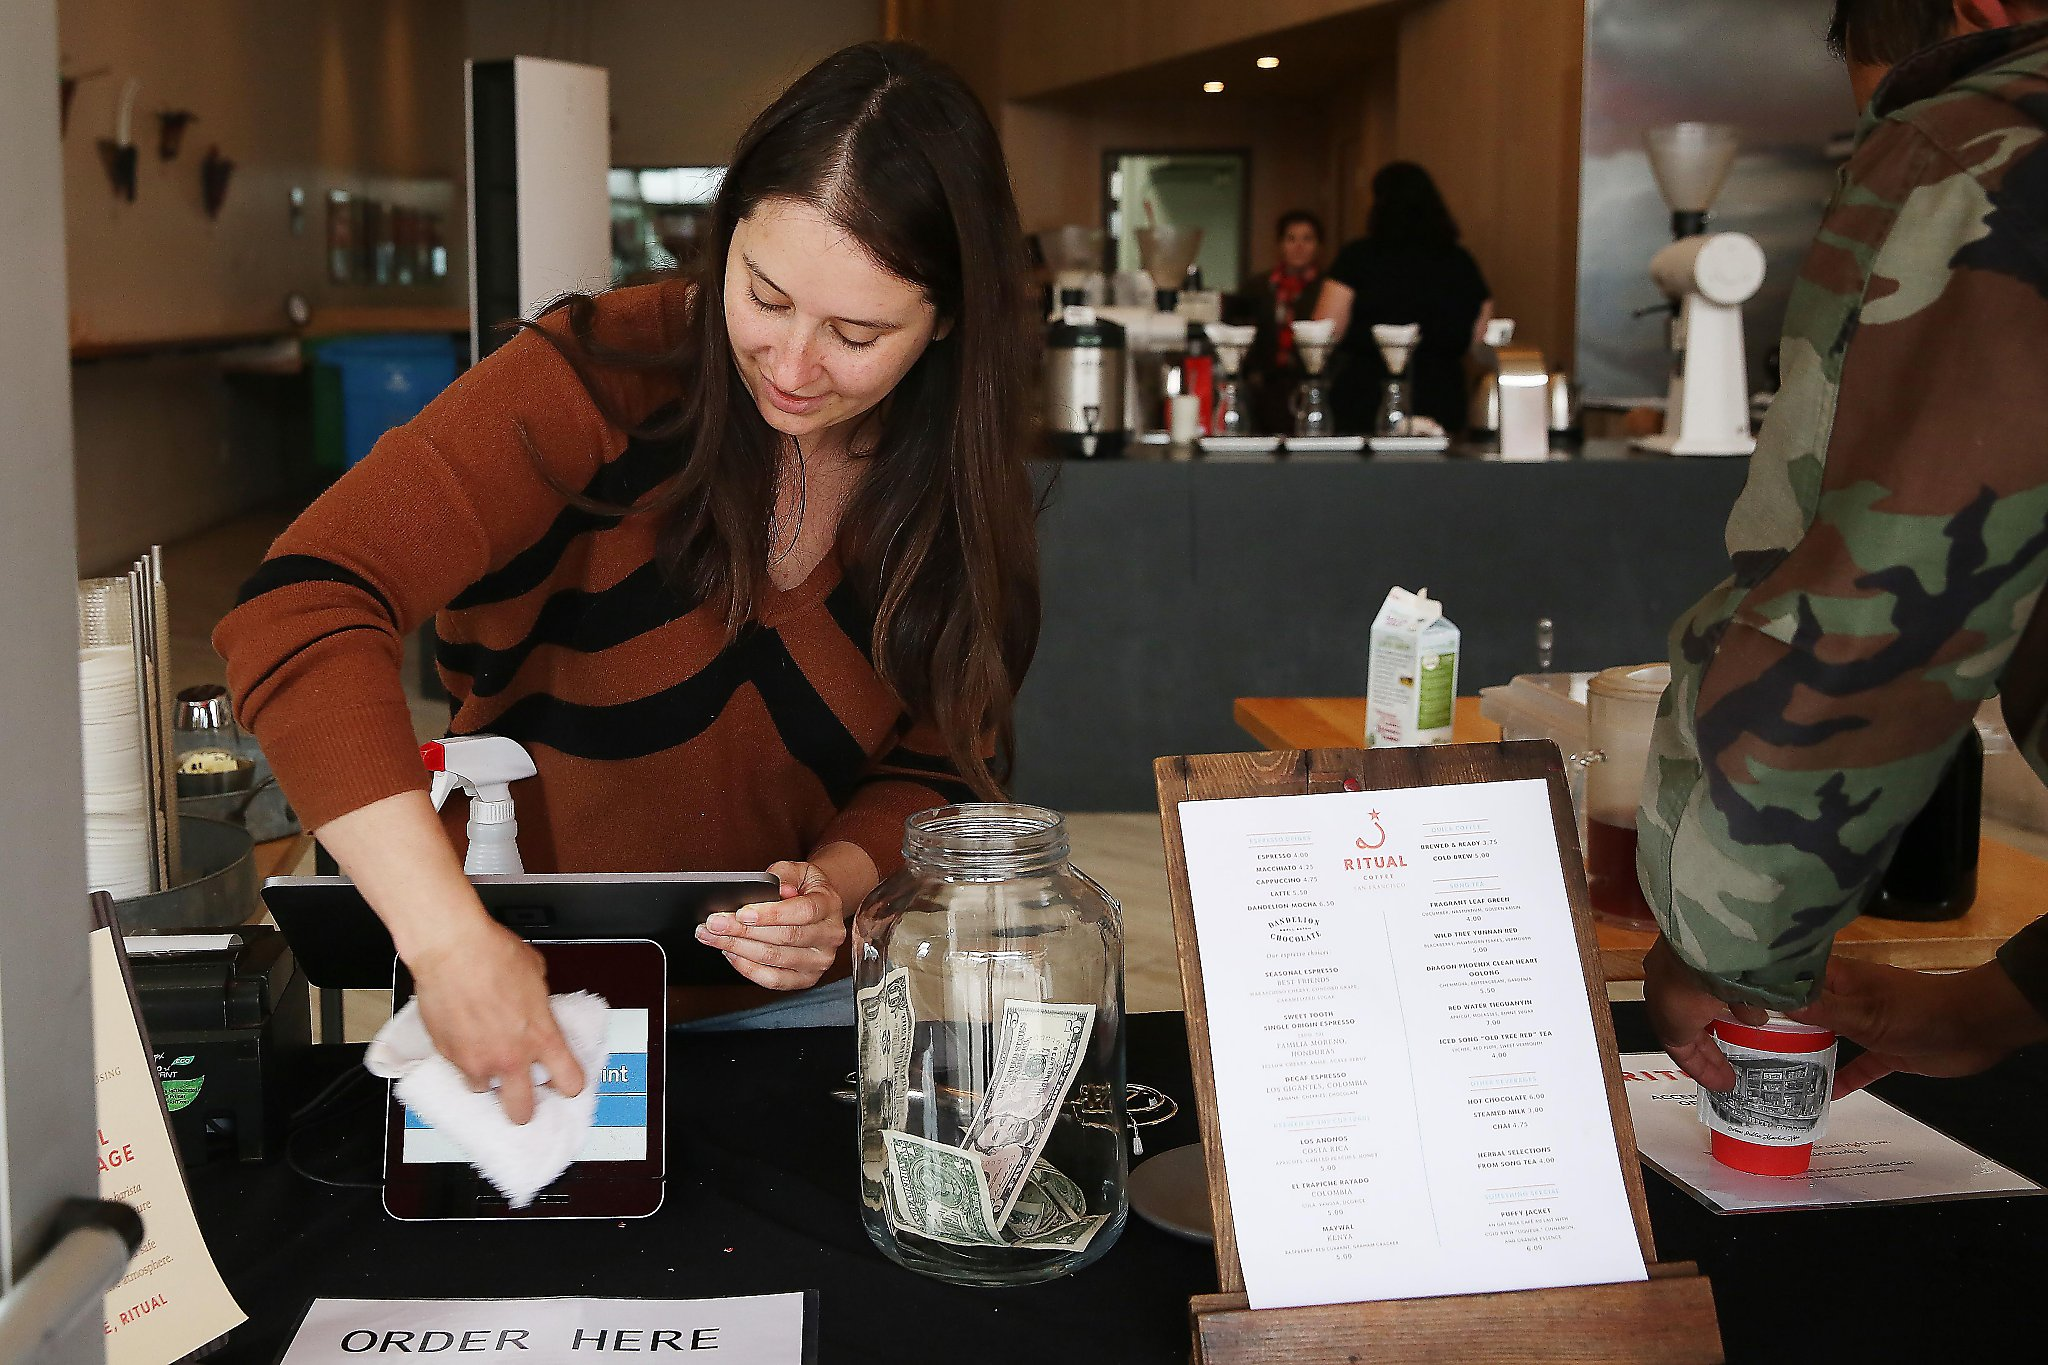 Coronavirus: SF businesses decline cash, fearing it could spread the virus